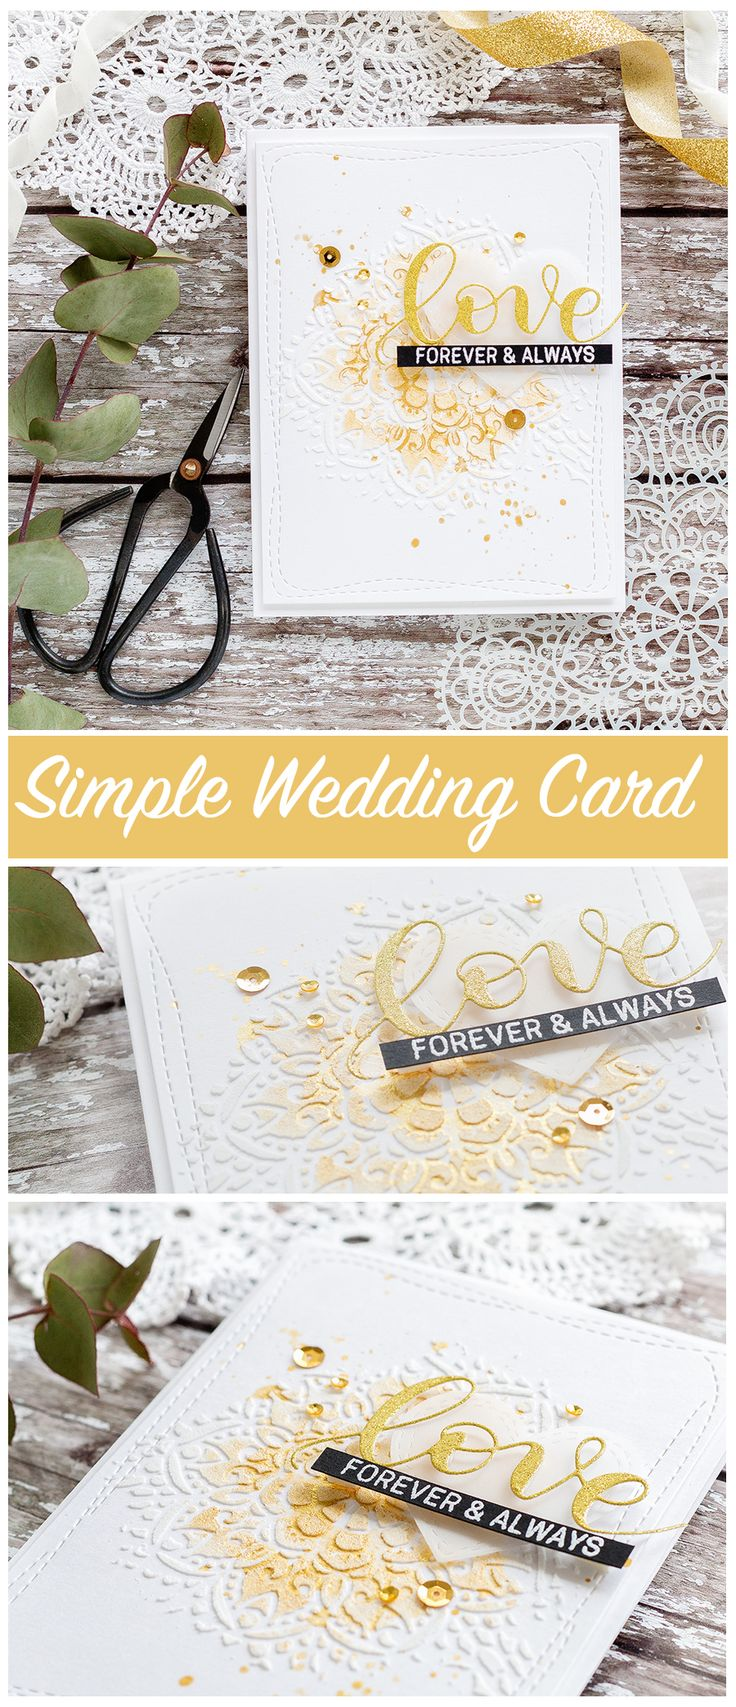 Quick and easy wedding card by Debby Hughes using a classic white, gold and black colour scheme. Find out more about this card by clicking on the following link: http://limedoodledesign.com/2017/06/quick-easy-card-for-the-wedding-season/